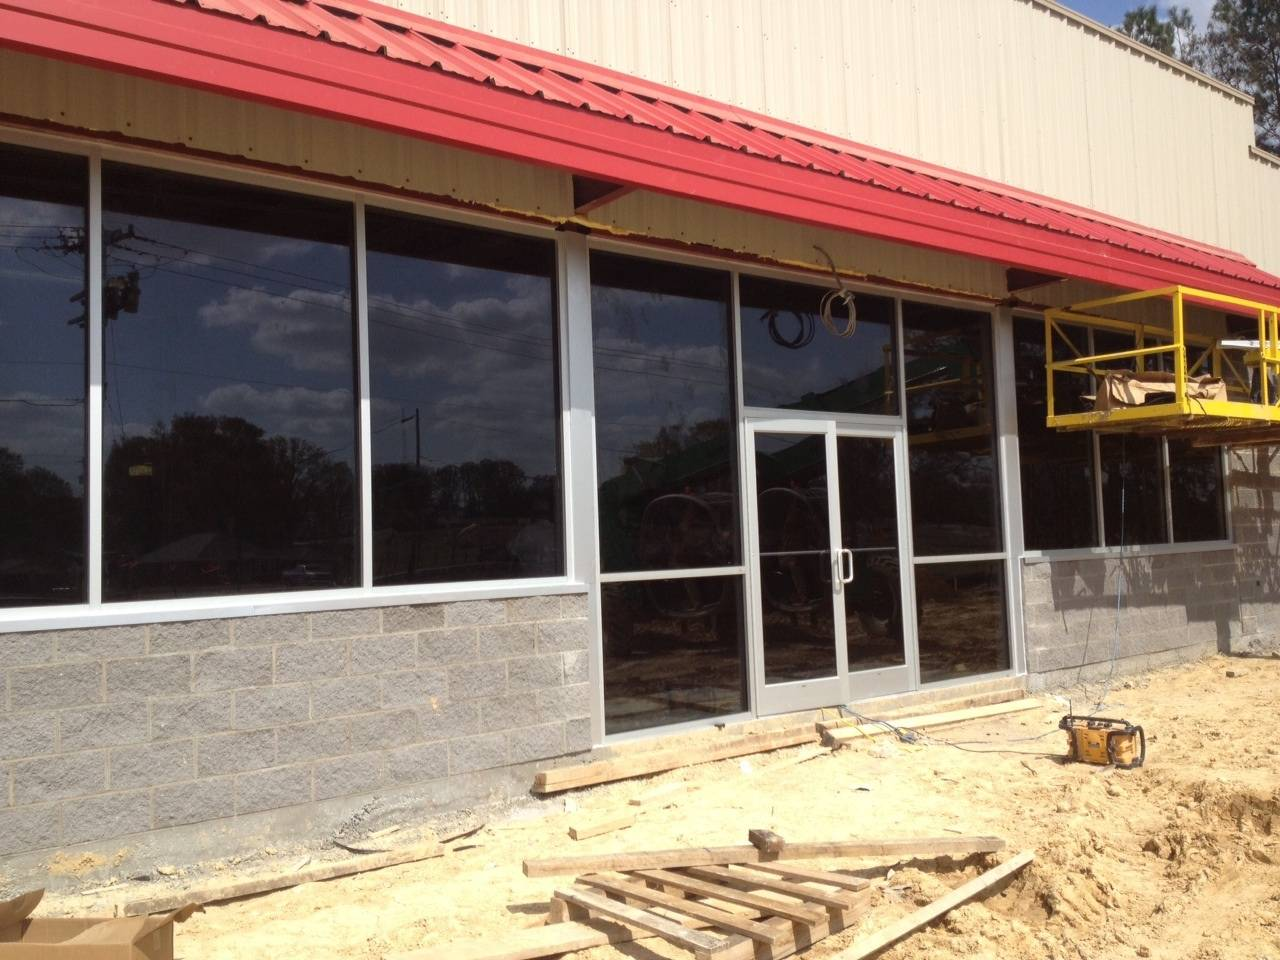 After Glass Added to Storefront